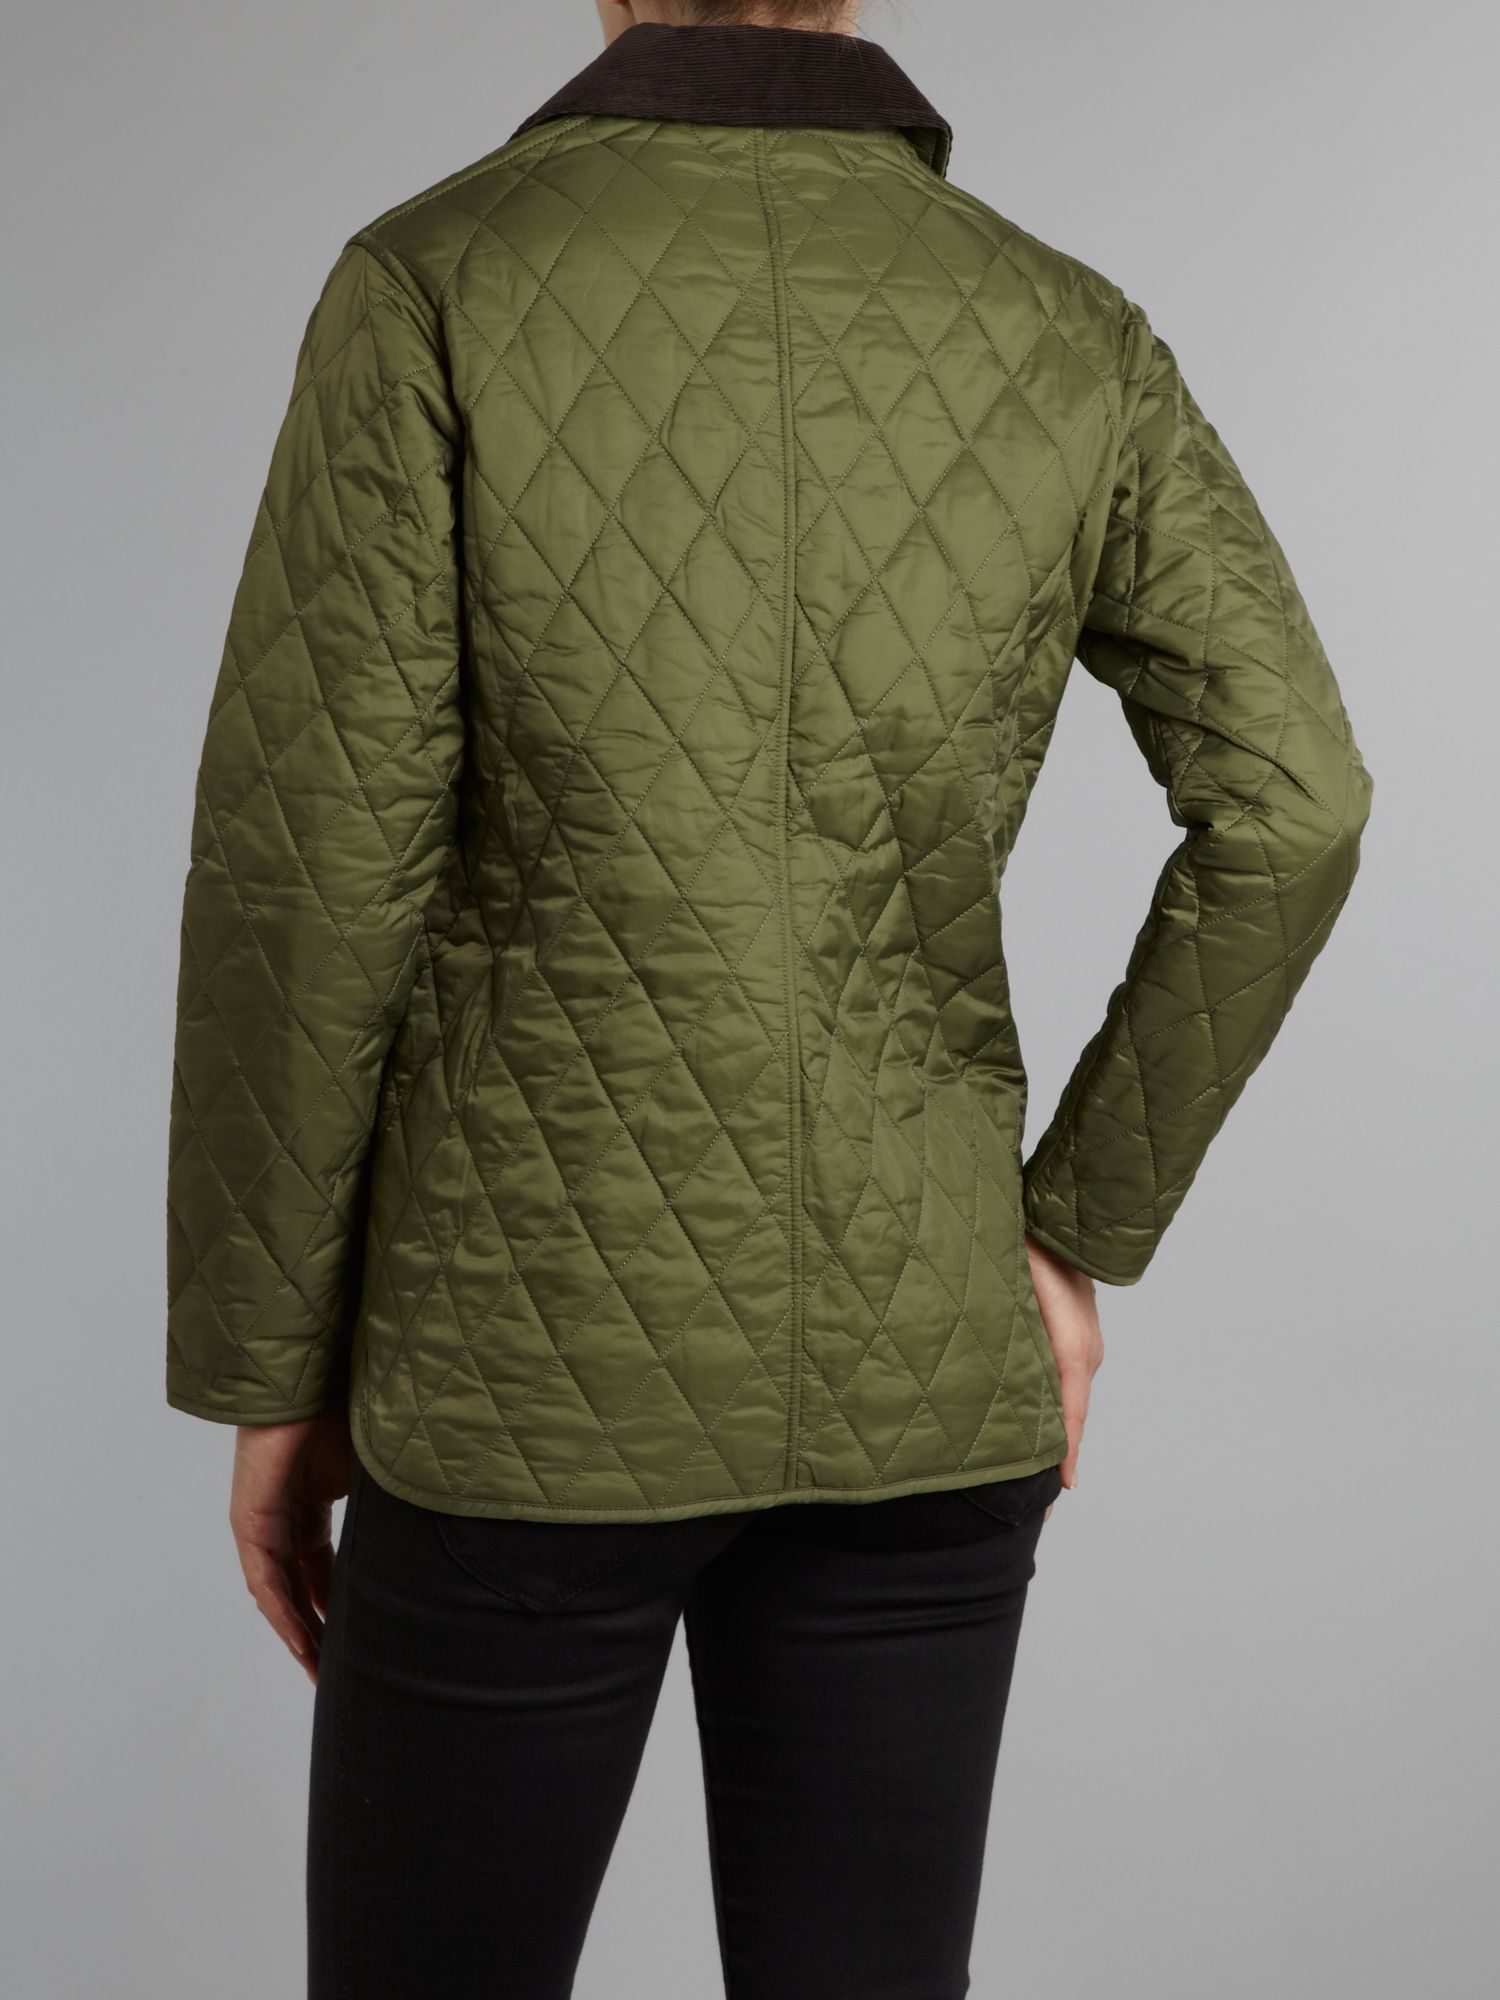 Barbour Shaped Liddesdale Quilted Jacket in Green for Men   Lyst : barbour shaped liddesdale quilted jacket - Adamdwight.com